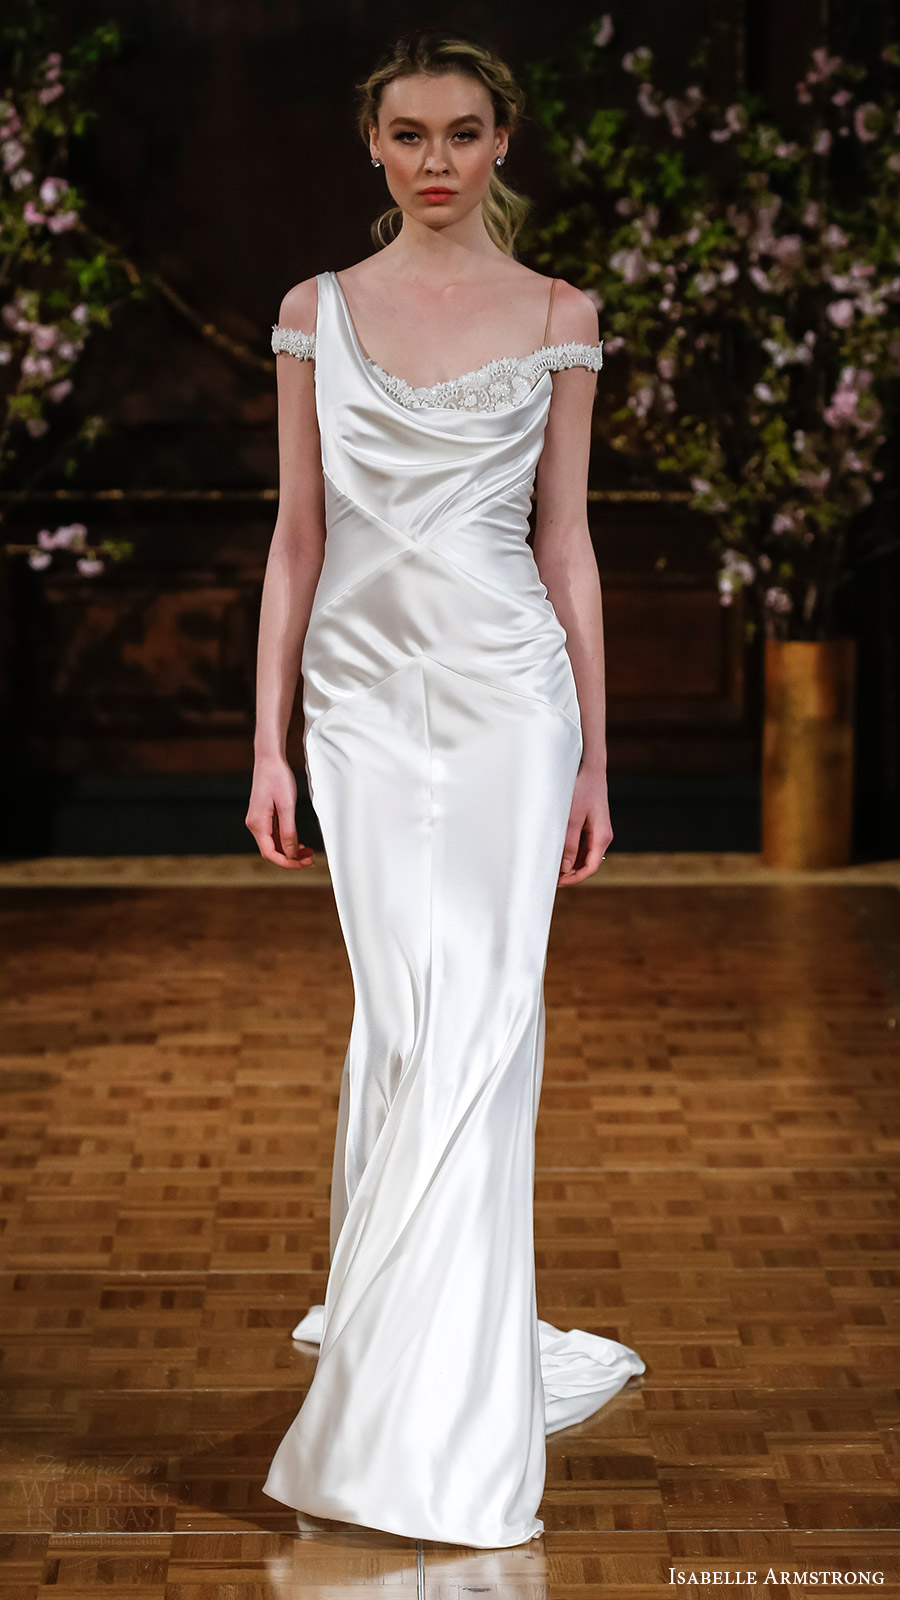 isabelle armstrong bridal spring 2017 asymmetric shoulder cowl neck sheath wedding dress (ricki) mv elegant